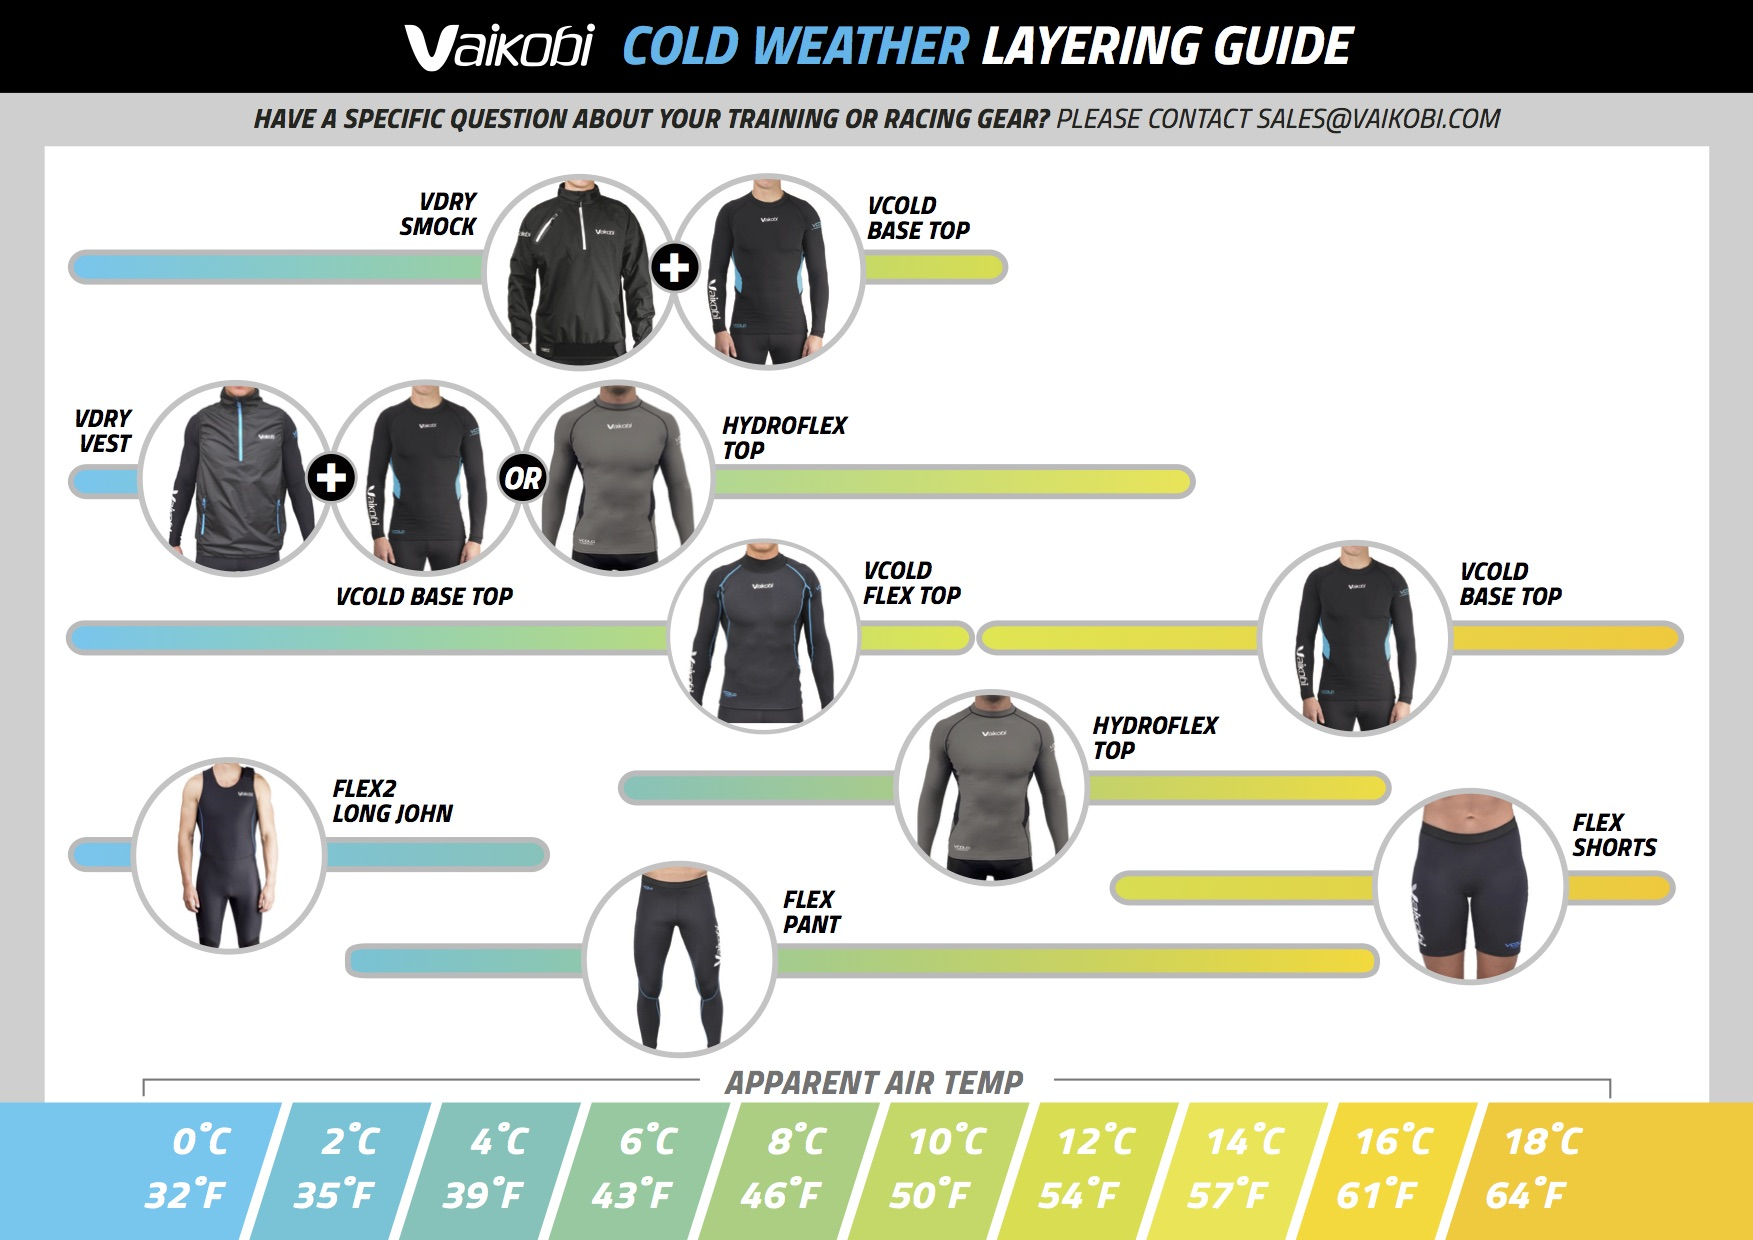 Vaikobi Cold Weather Layering Guide Surfski Paddel Bekleidung